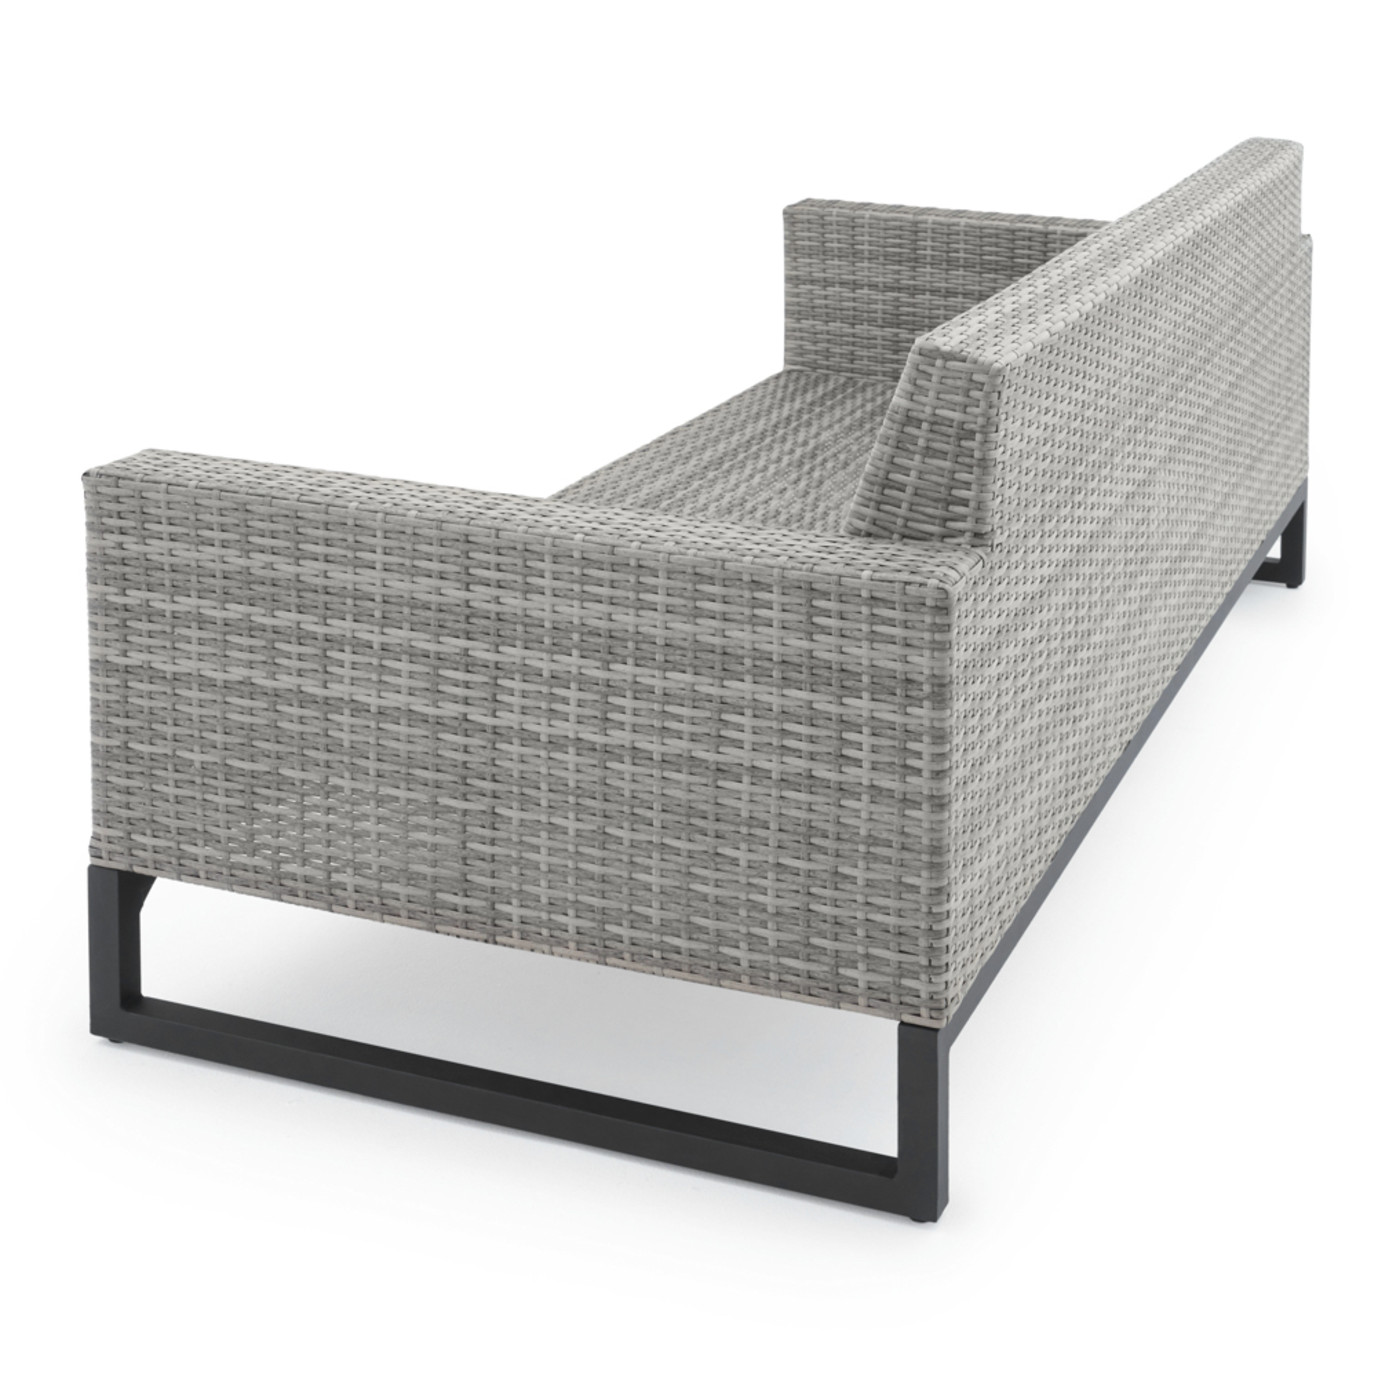 Milo™ Grey 4pc Seating Set - Charcoal Grey